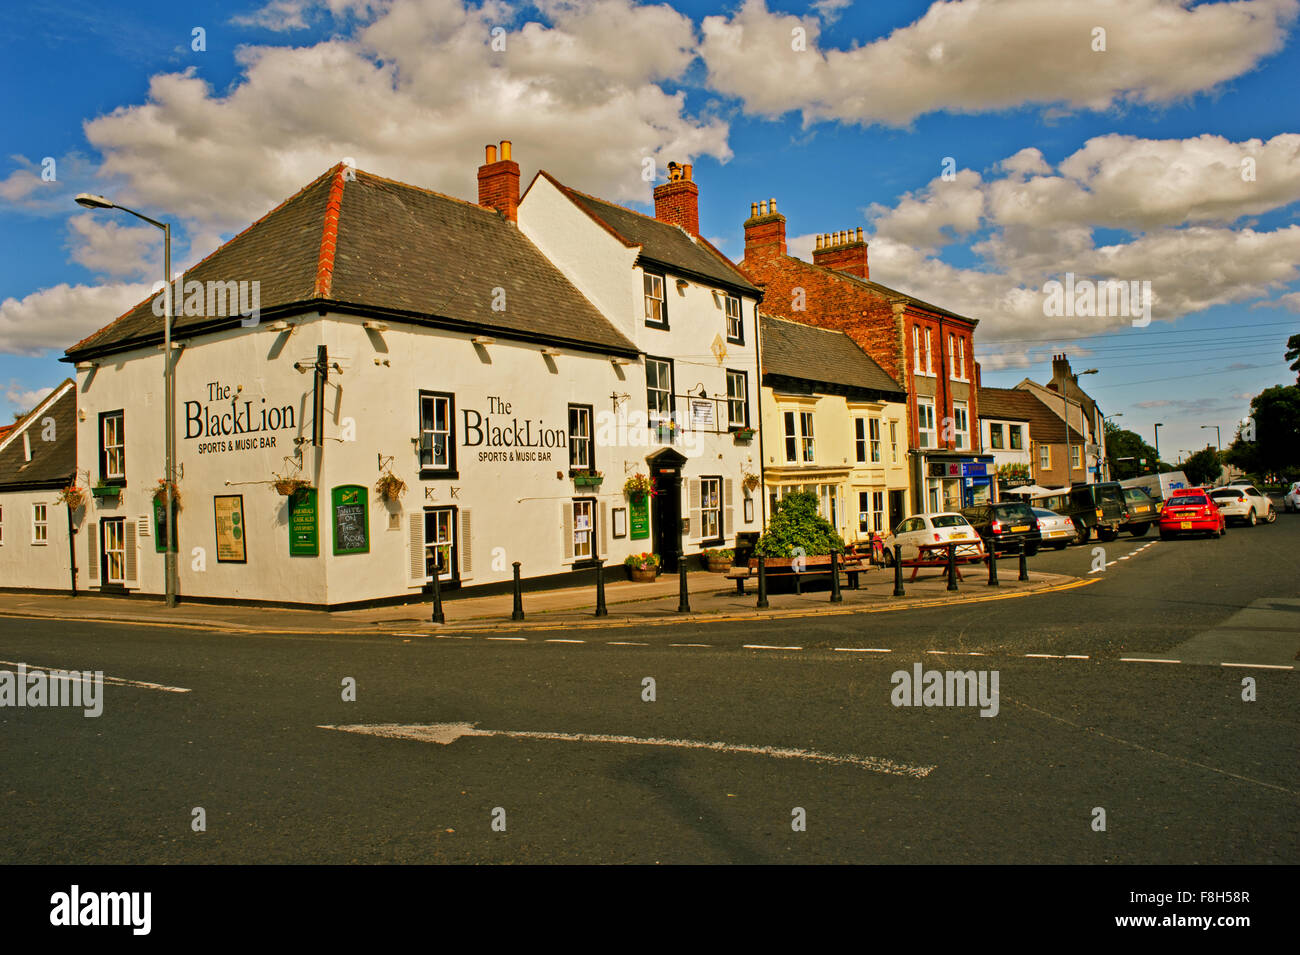 The Black Lion at Sedgefield - Stock Image